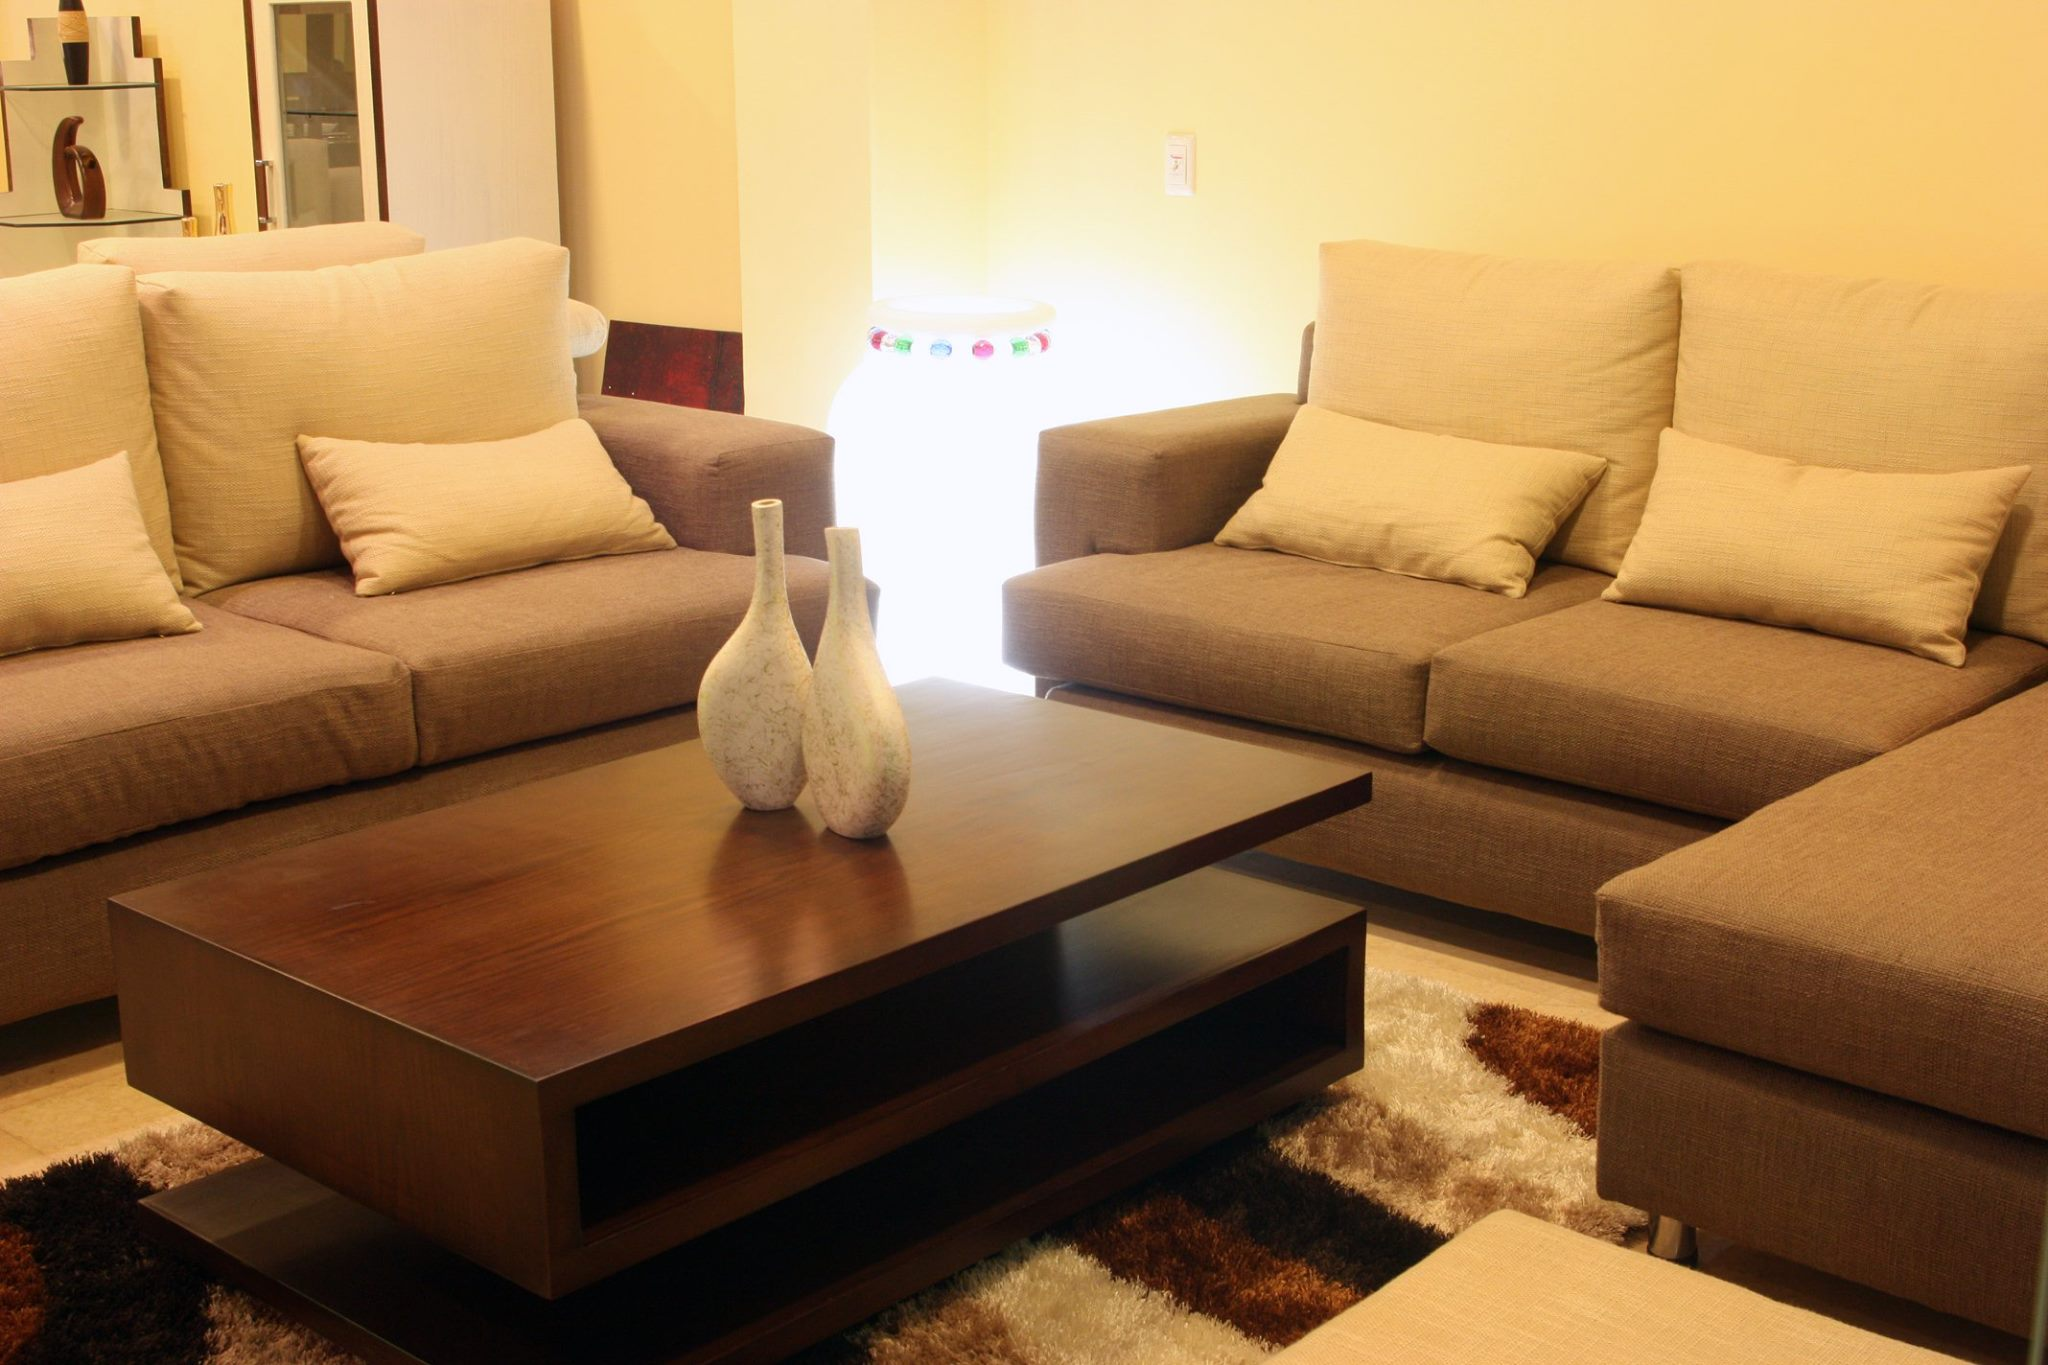 Sofa Repair Visakhapatnam Updates Just Furniture In Visakhapatnam Export Quality Furniture